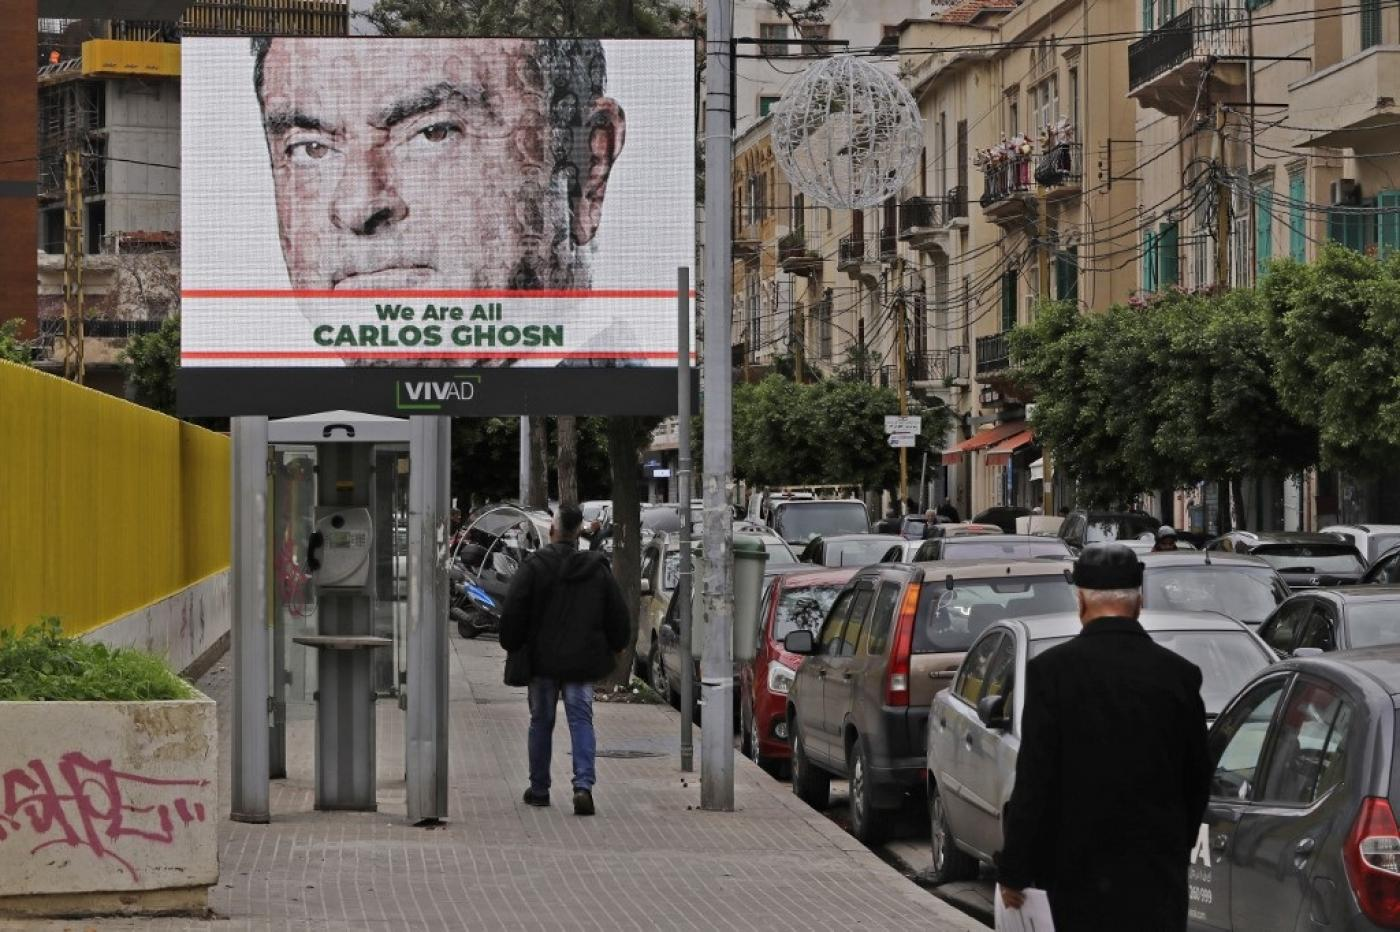 A billboard in Beirut expressing solidarity with Carlos Ghosn.